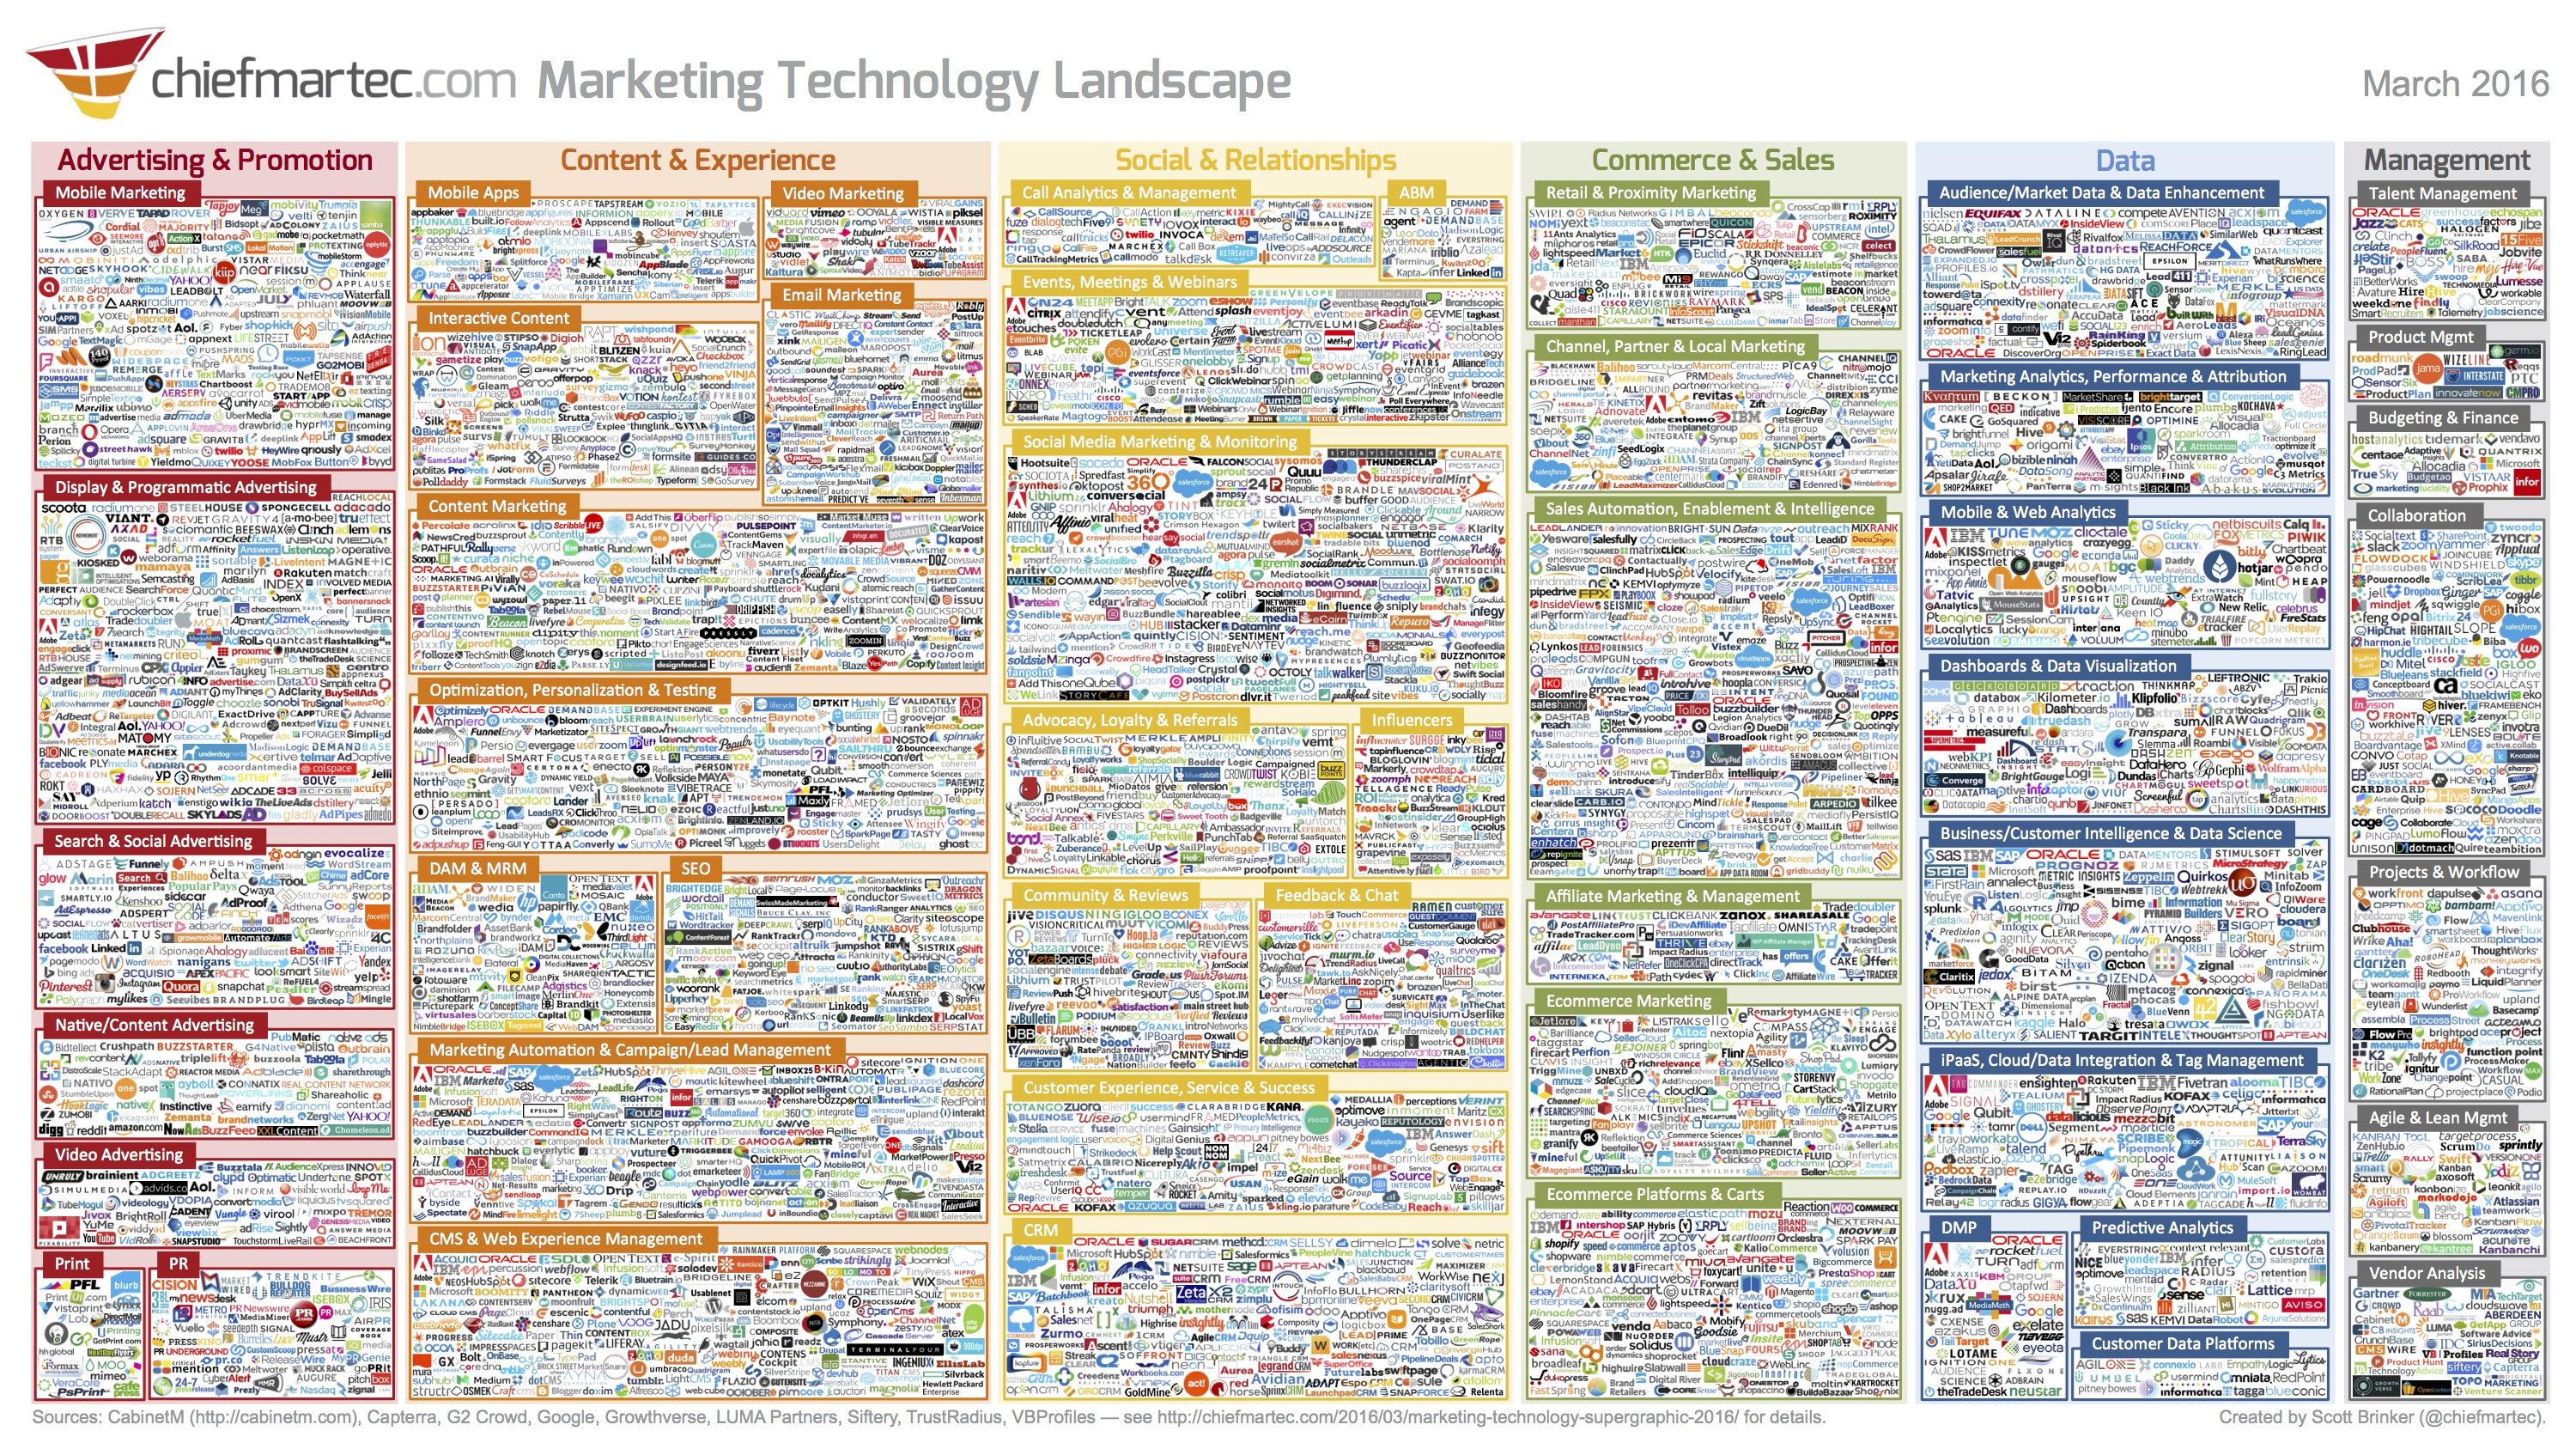 Online marketing tools for nonprofits, market map of marketing technology companies